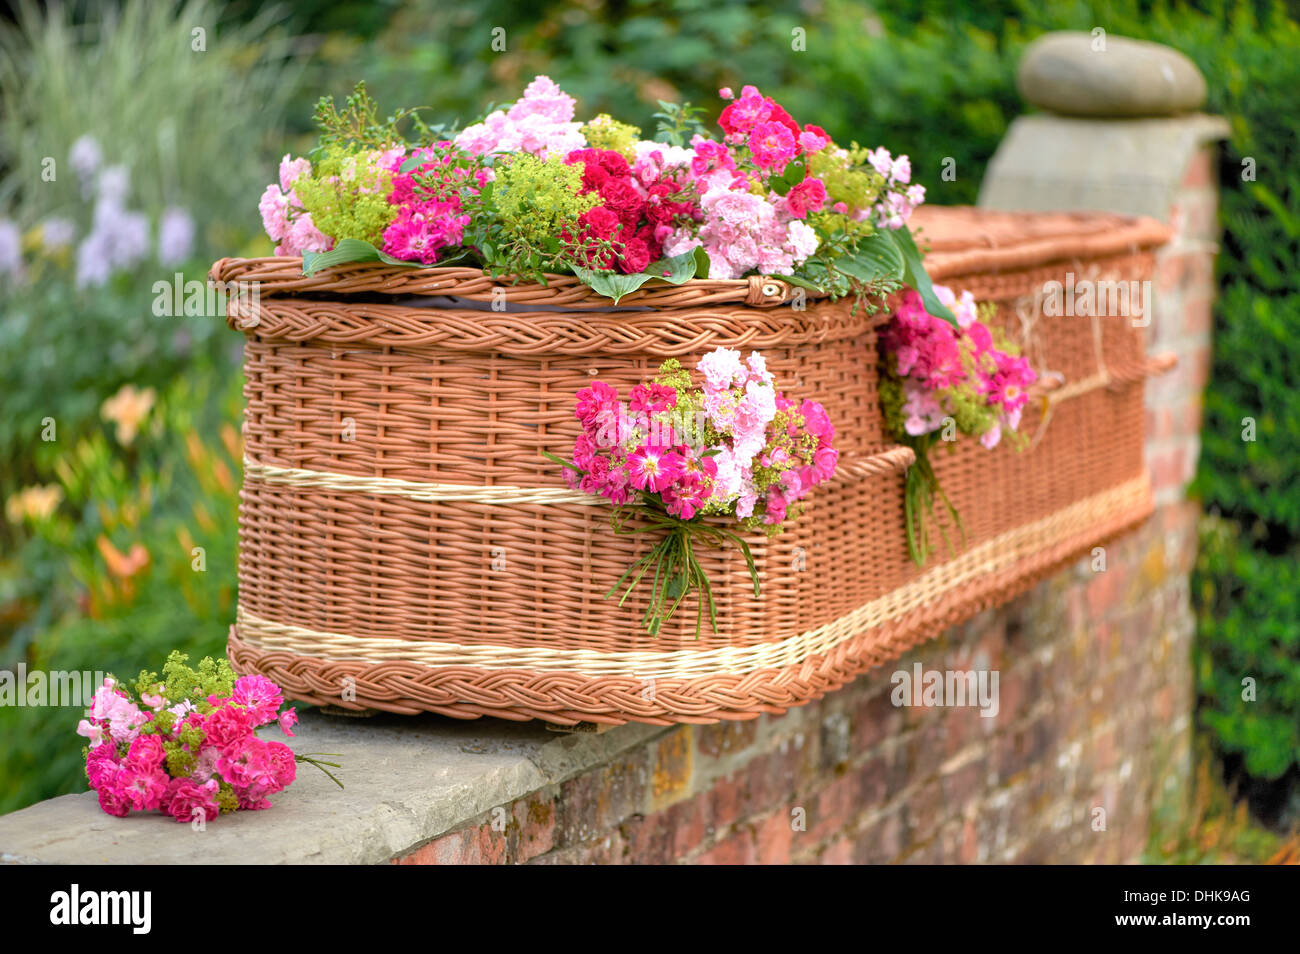 Wicker coffin with flower decoration - Stock Image